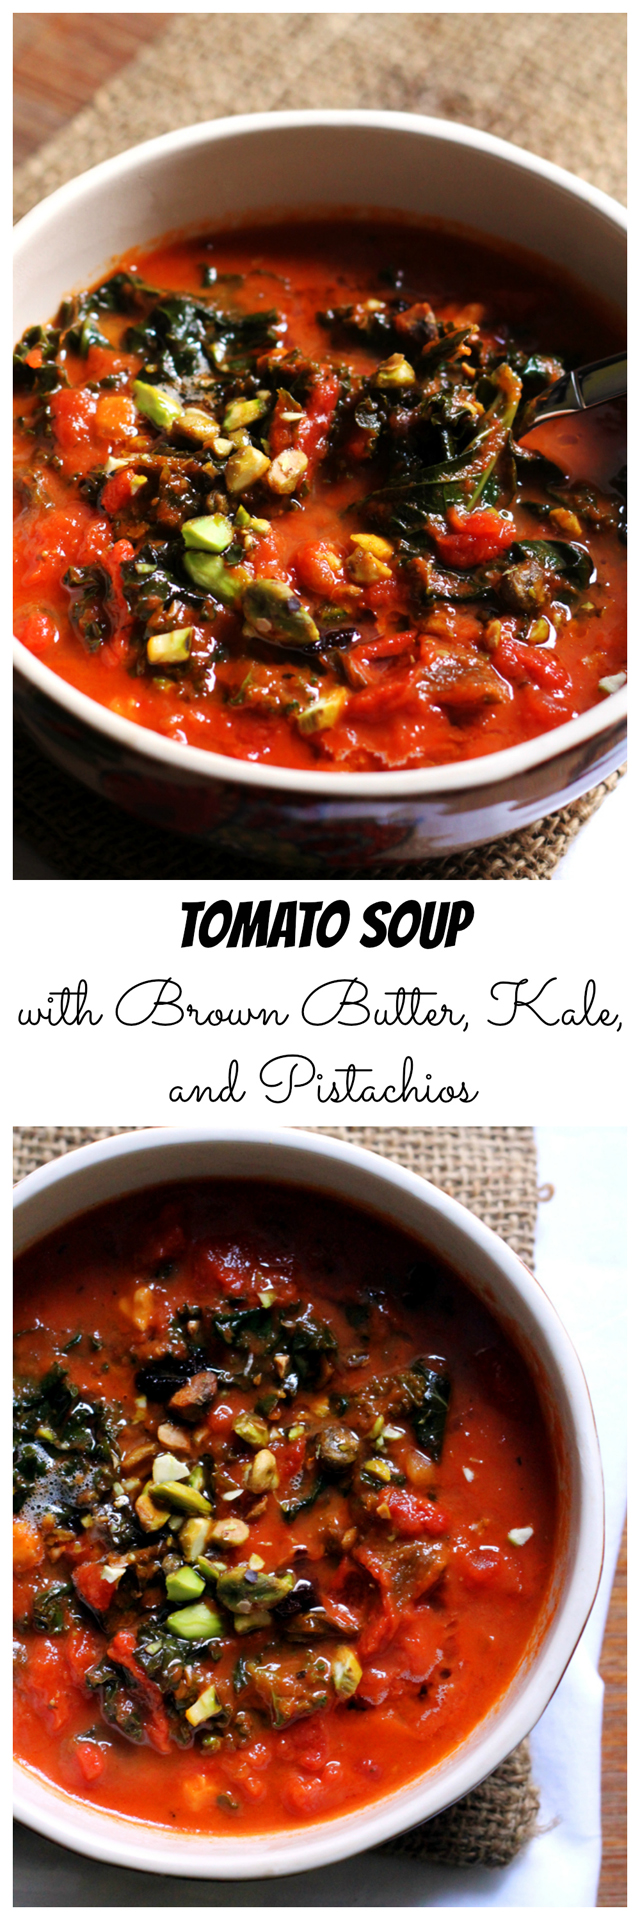 Brown Butter Tomato Soup Recipe — Dishmaps